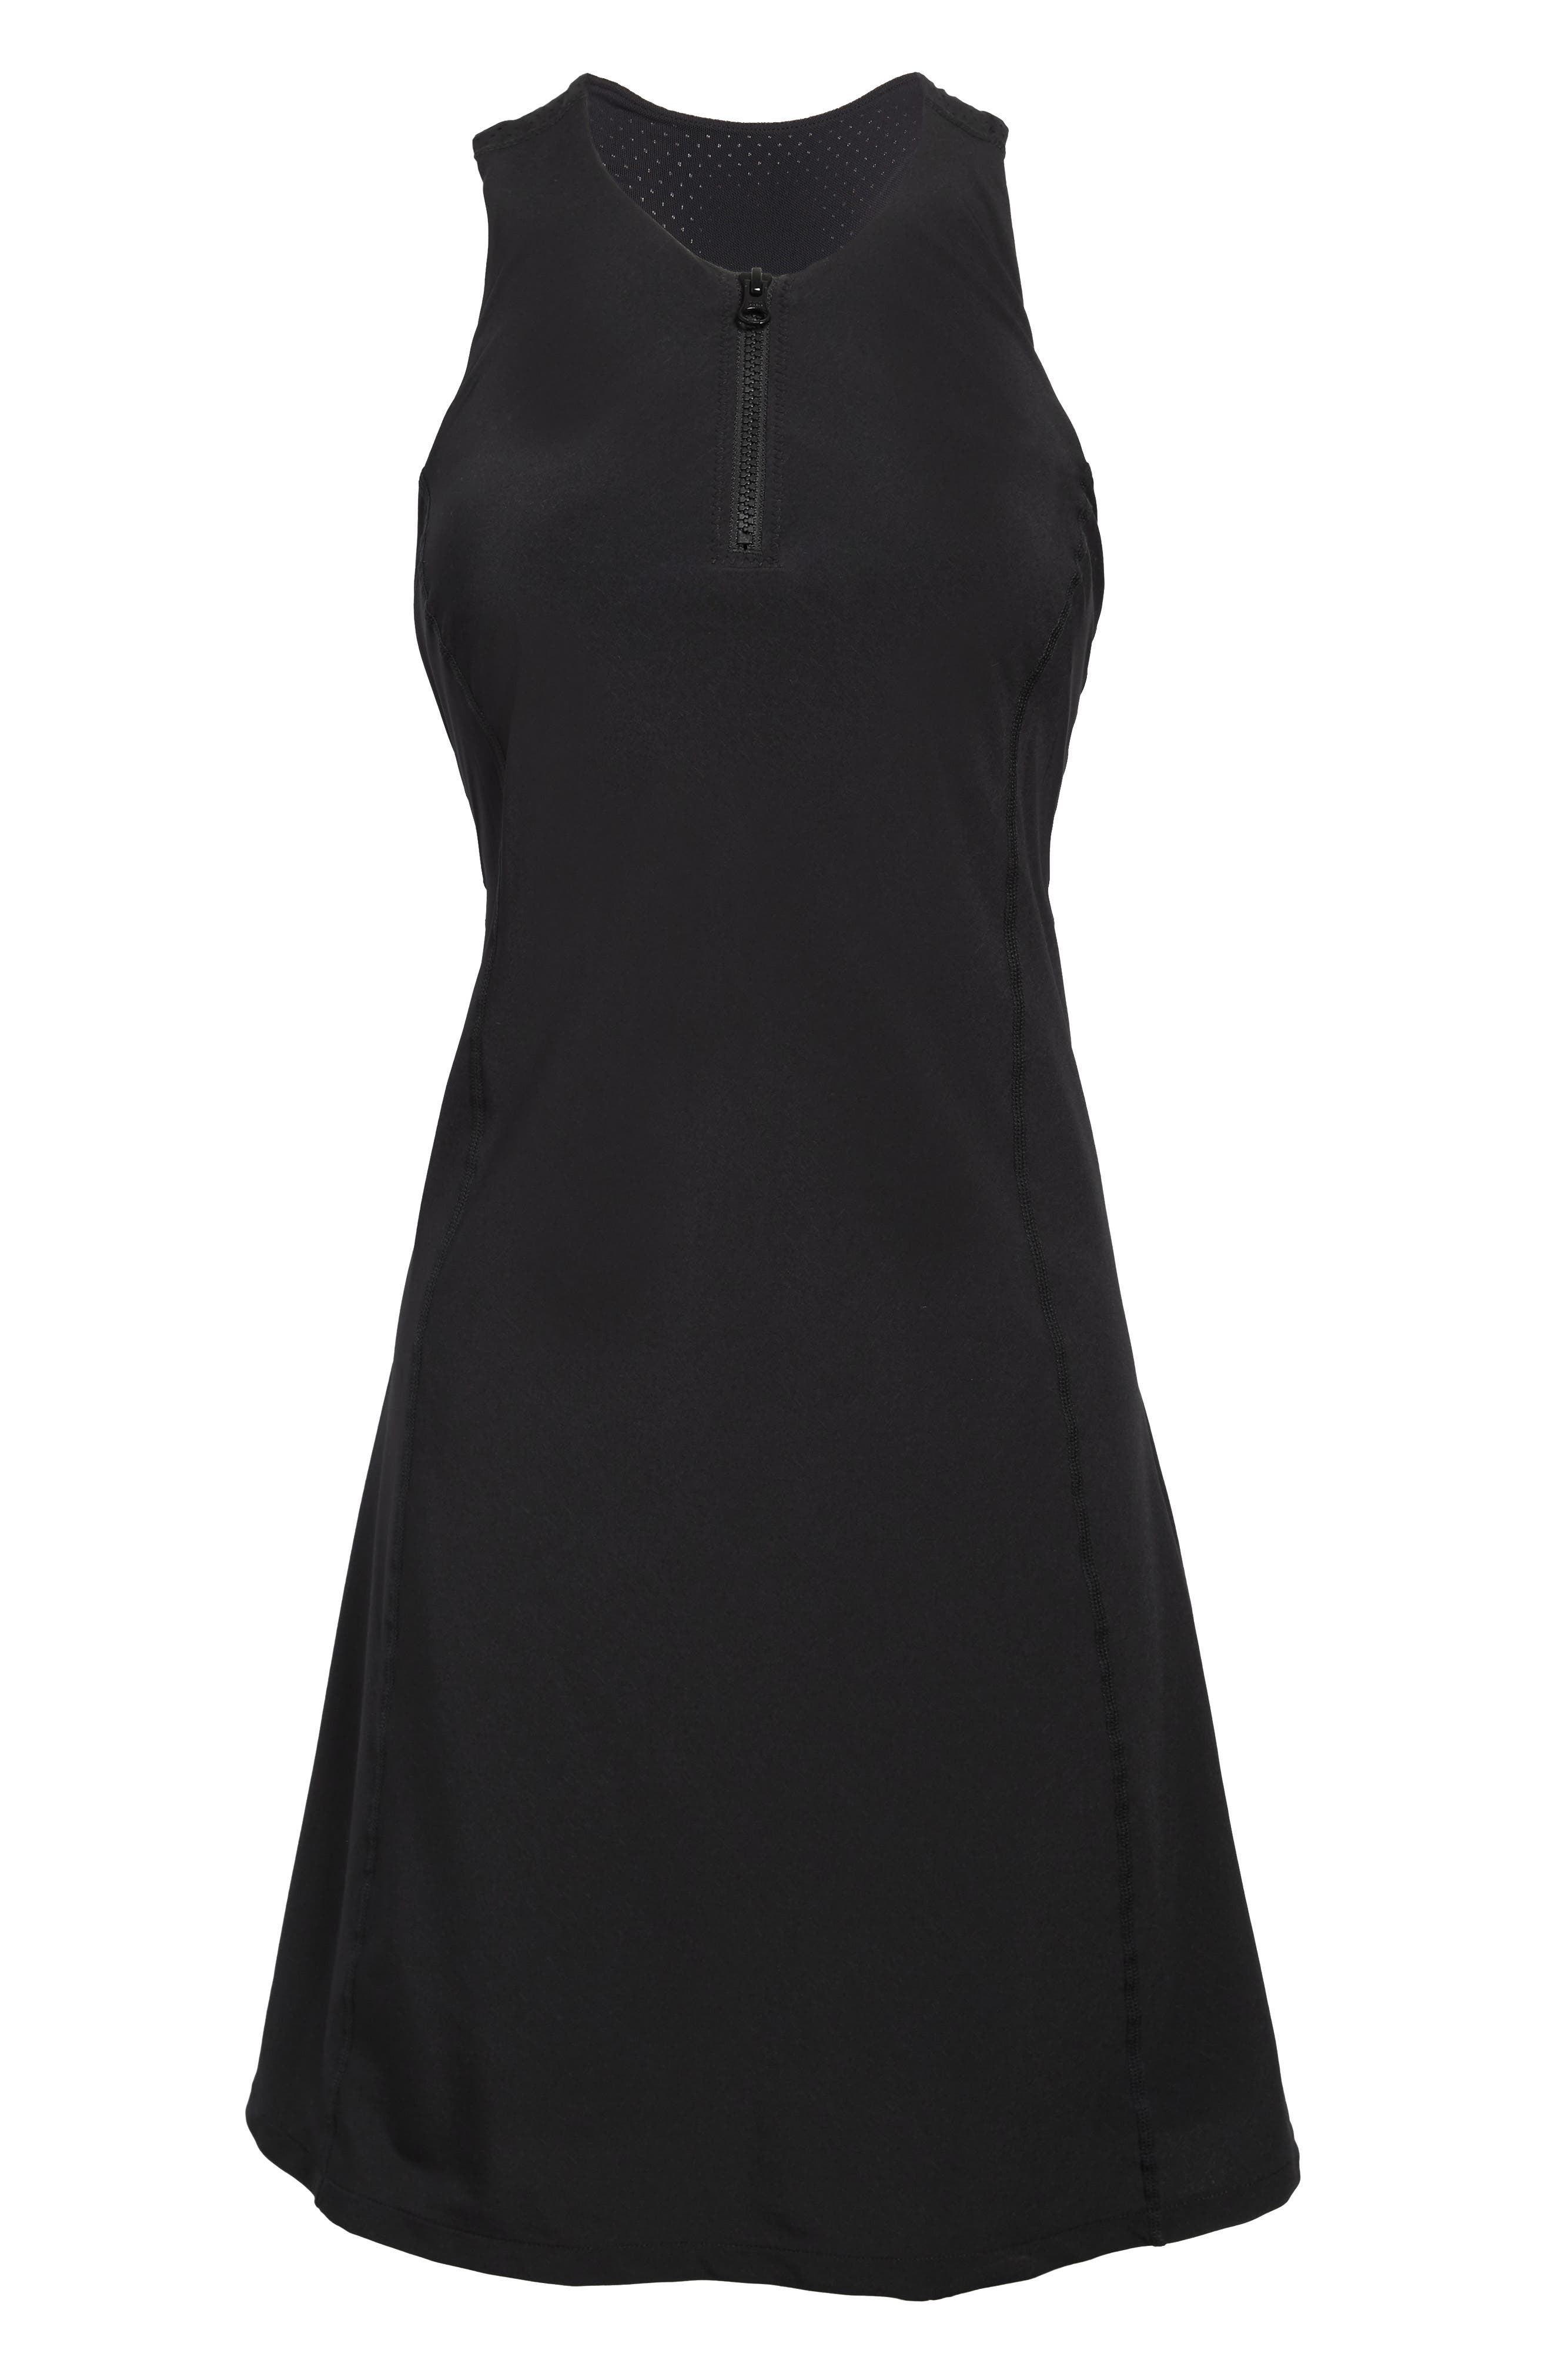 It\\\'s always your serve in this sporty sleeveless dress made from stretchy, quick-drying fabric with a breathable mesh racerback. Style Name: Zella Sun\\\'s Out Exercise Dress. Style Number: 5975698. Available in stores.